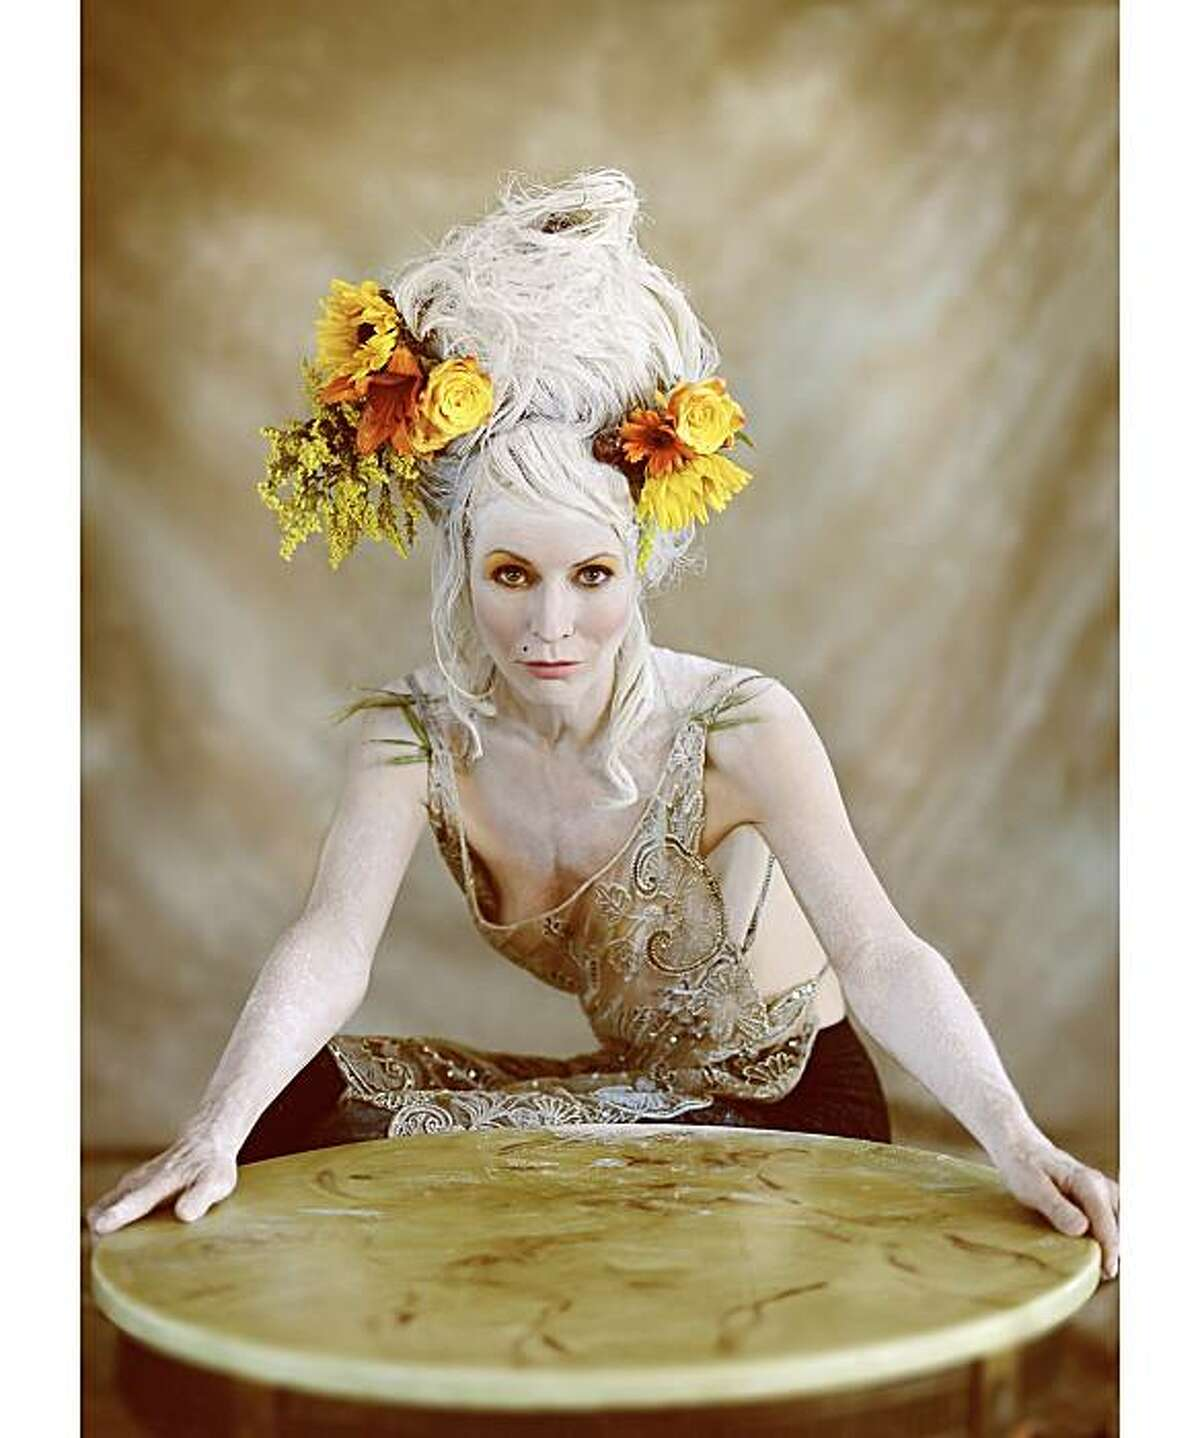 London photographer Frederic Aranda, who specializes in portrait photography, did a fantasy fashion series with San Francisco arts patron Christine Suppes in London during June, 2010. The series was called